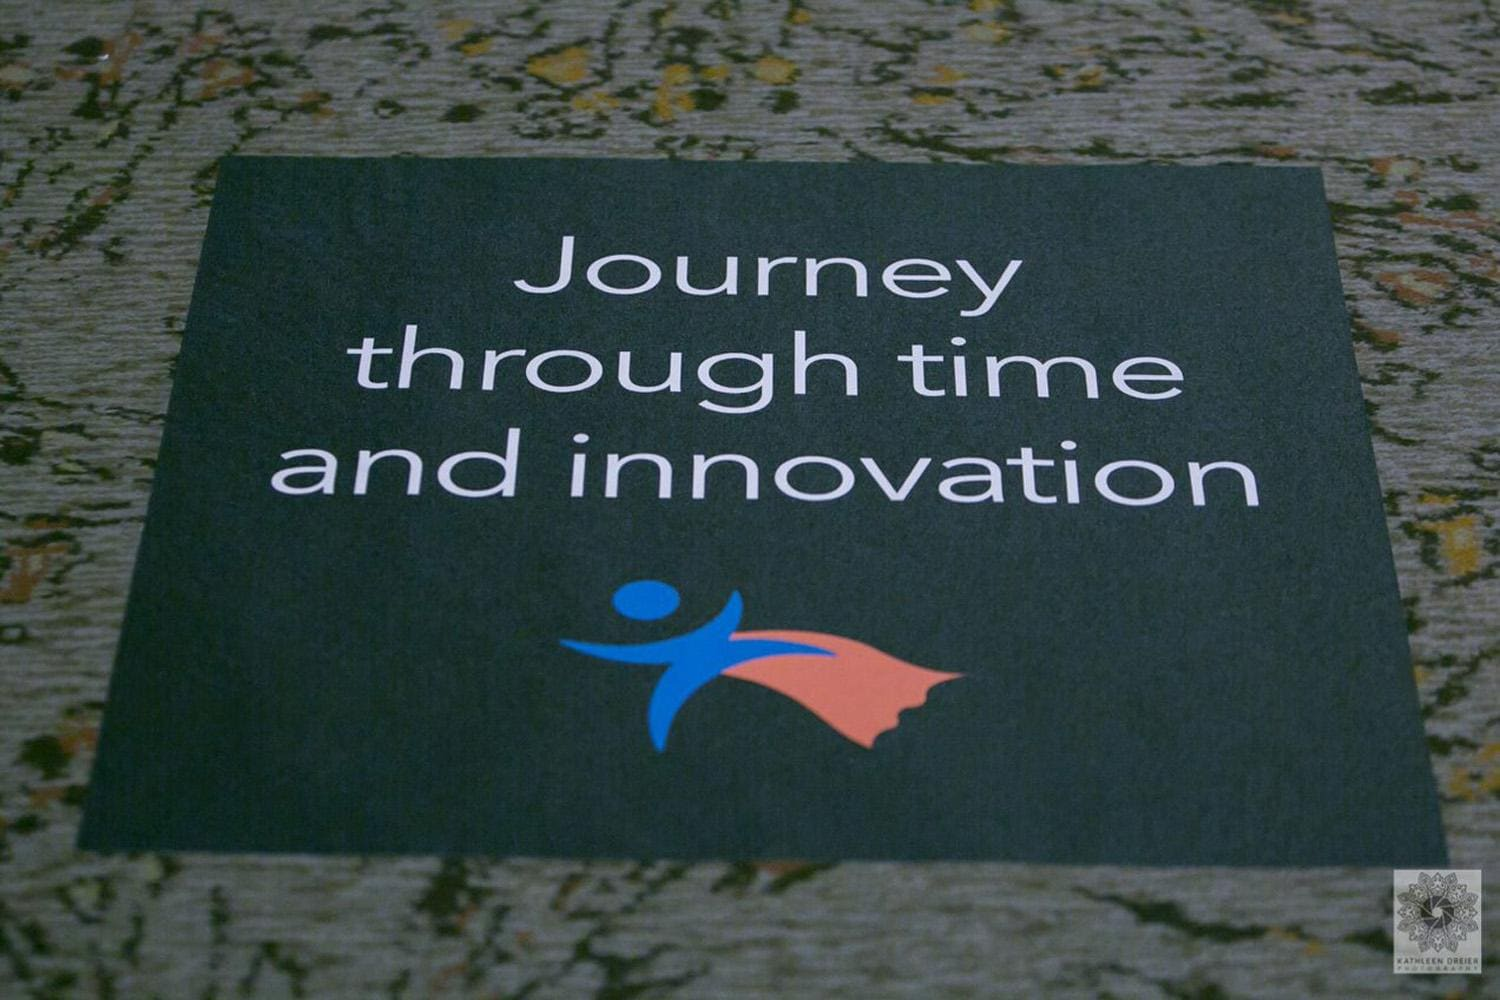 Journey through time and innovation tile